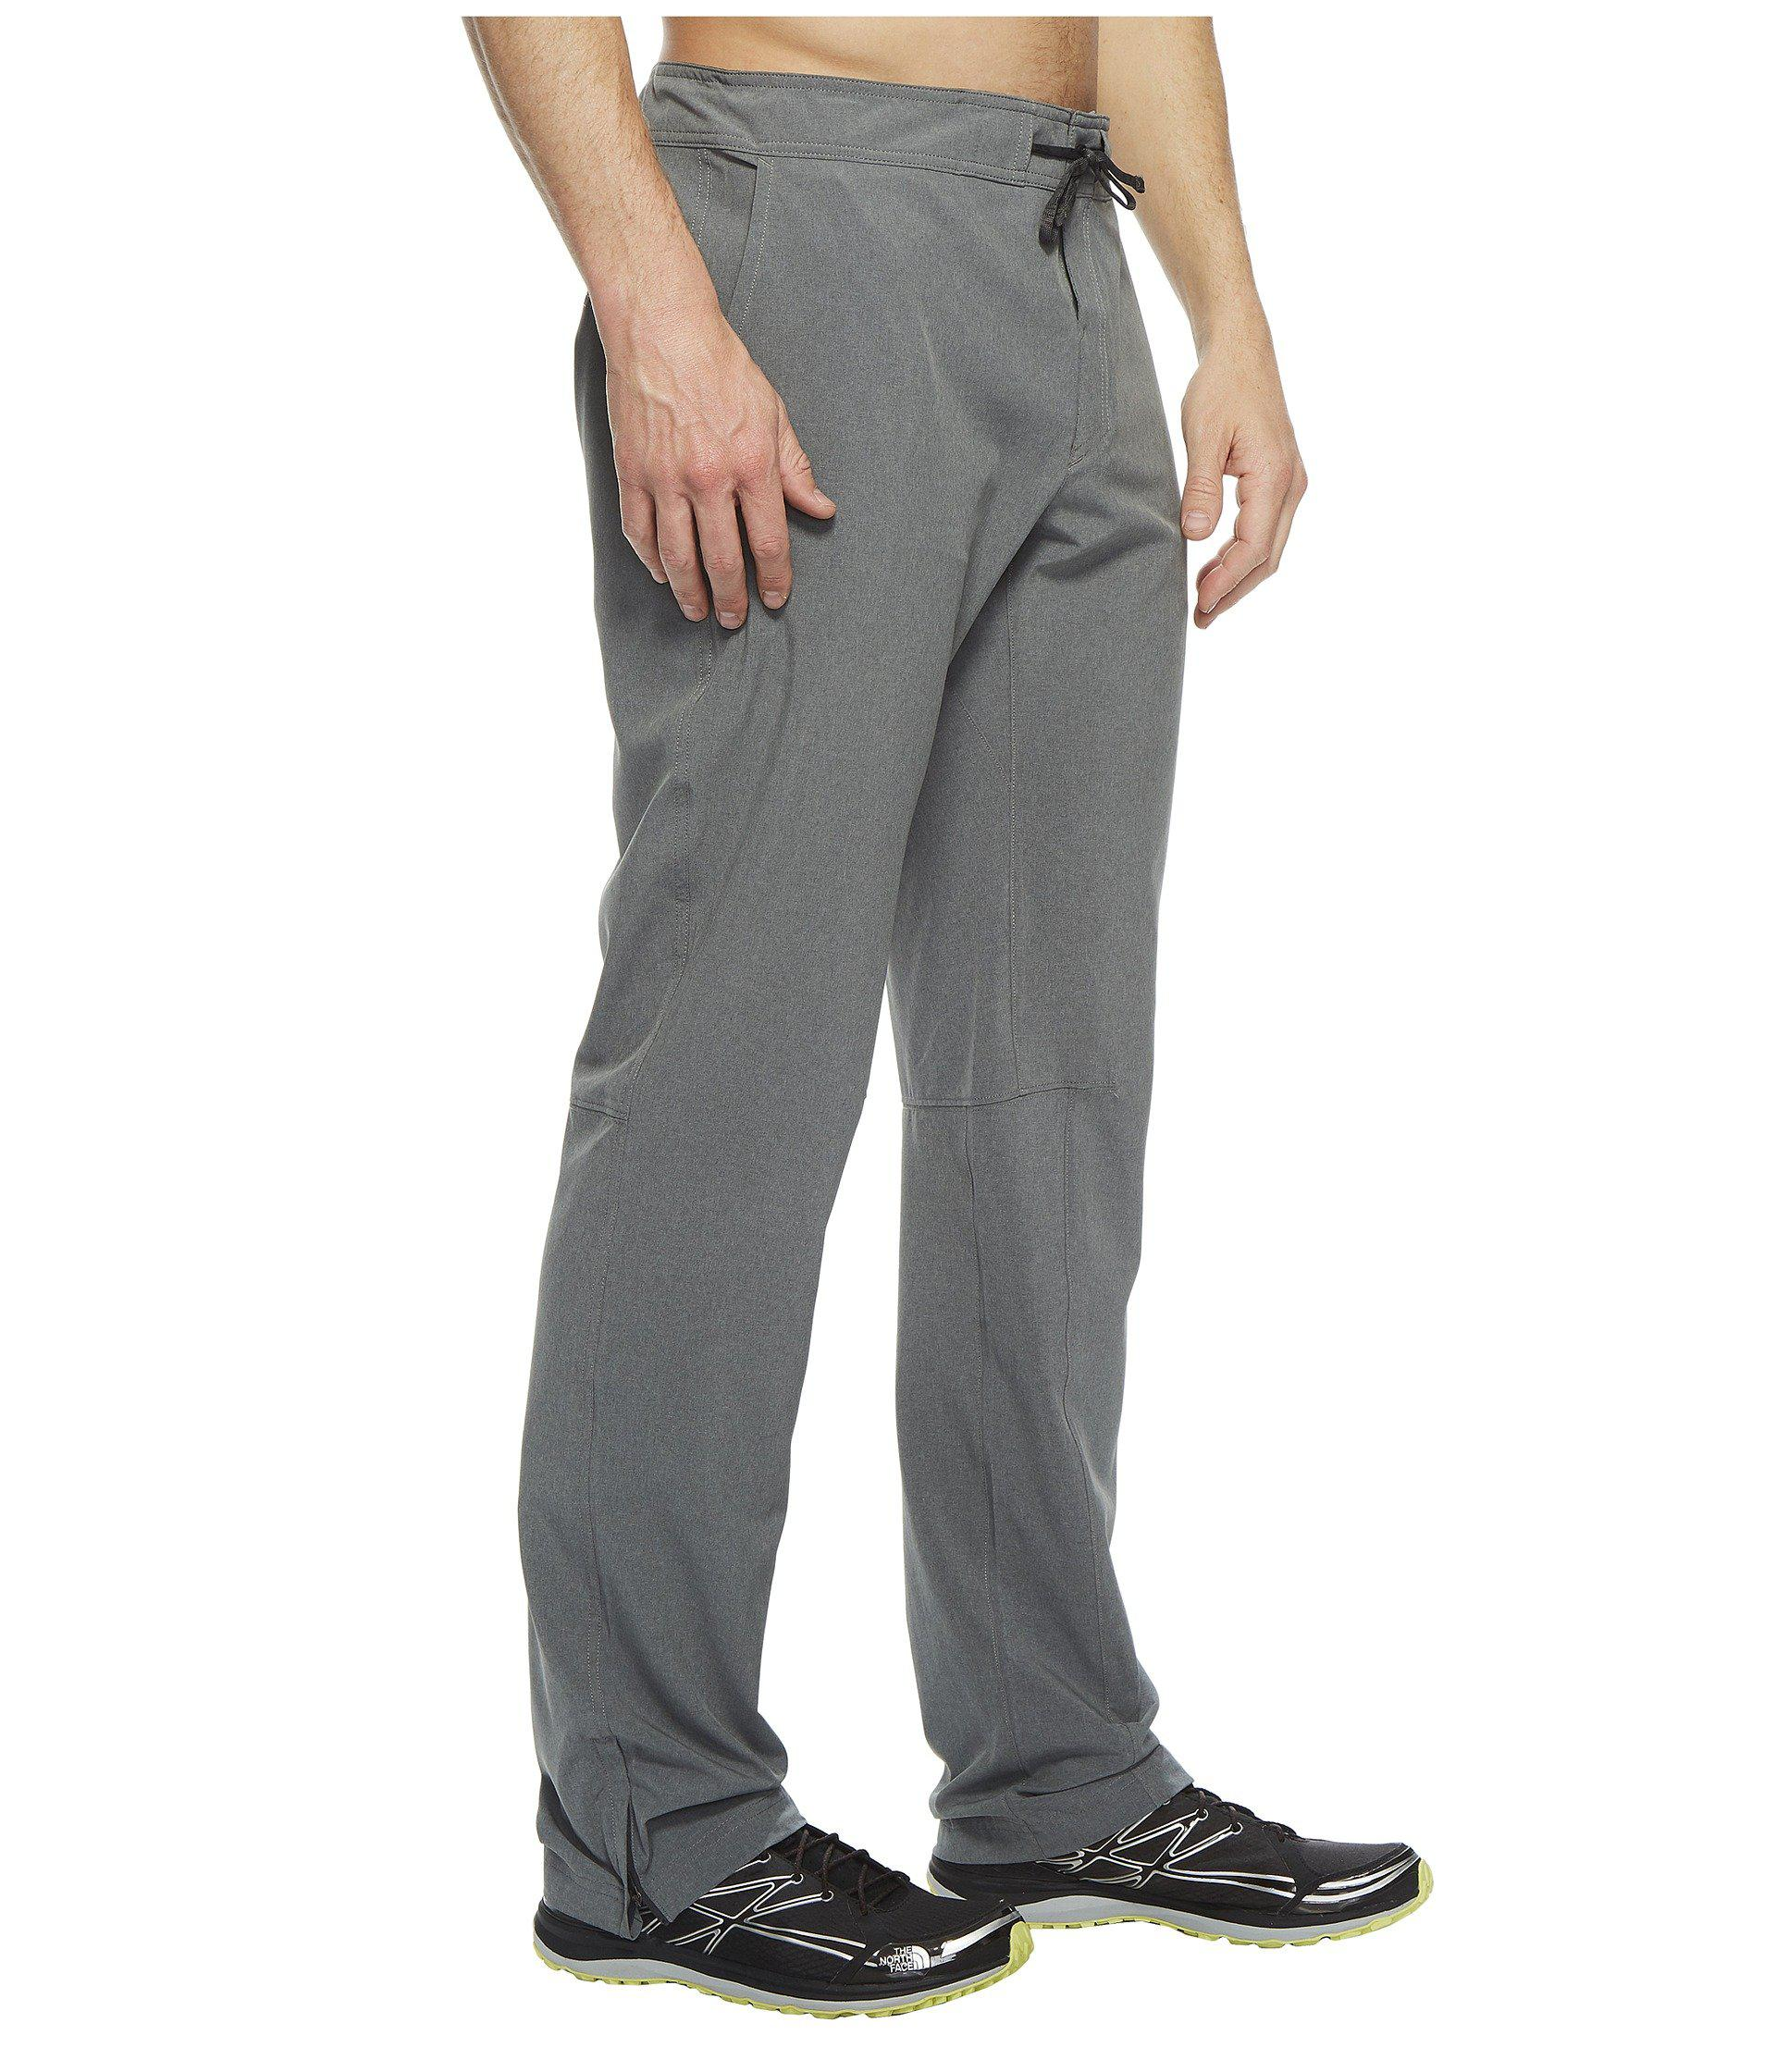 the best attitude 7accf 8cdd8 The North Face Kilowatt Pro Pants in Gray for Men - Lyst